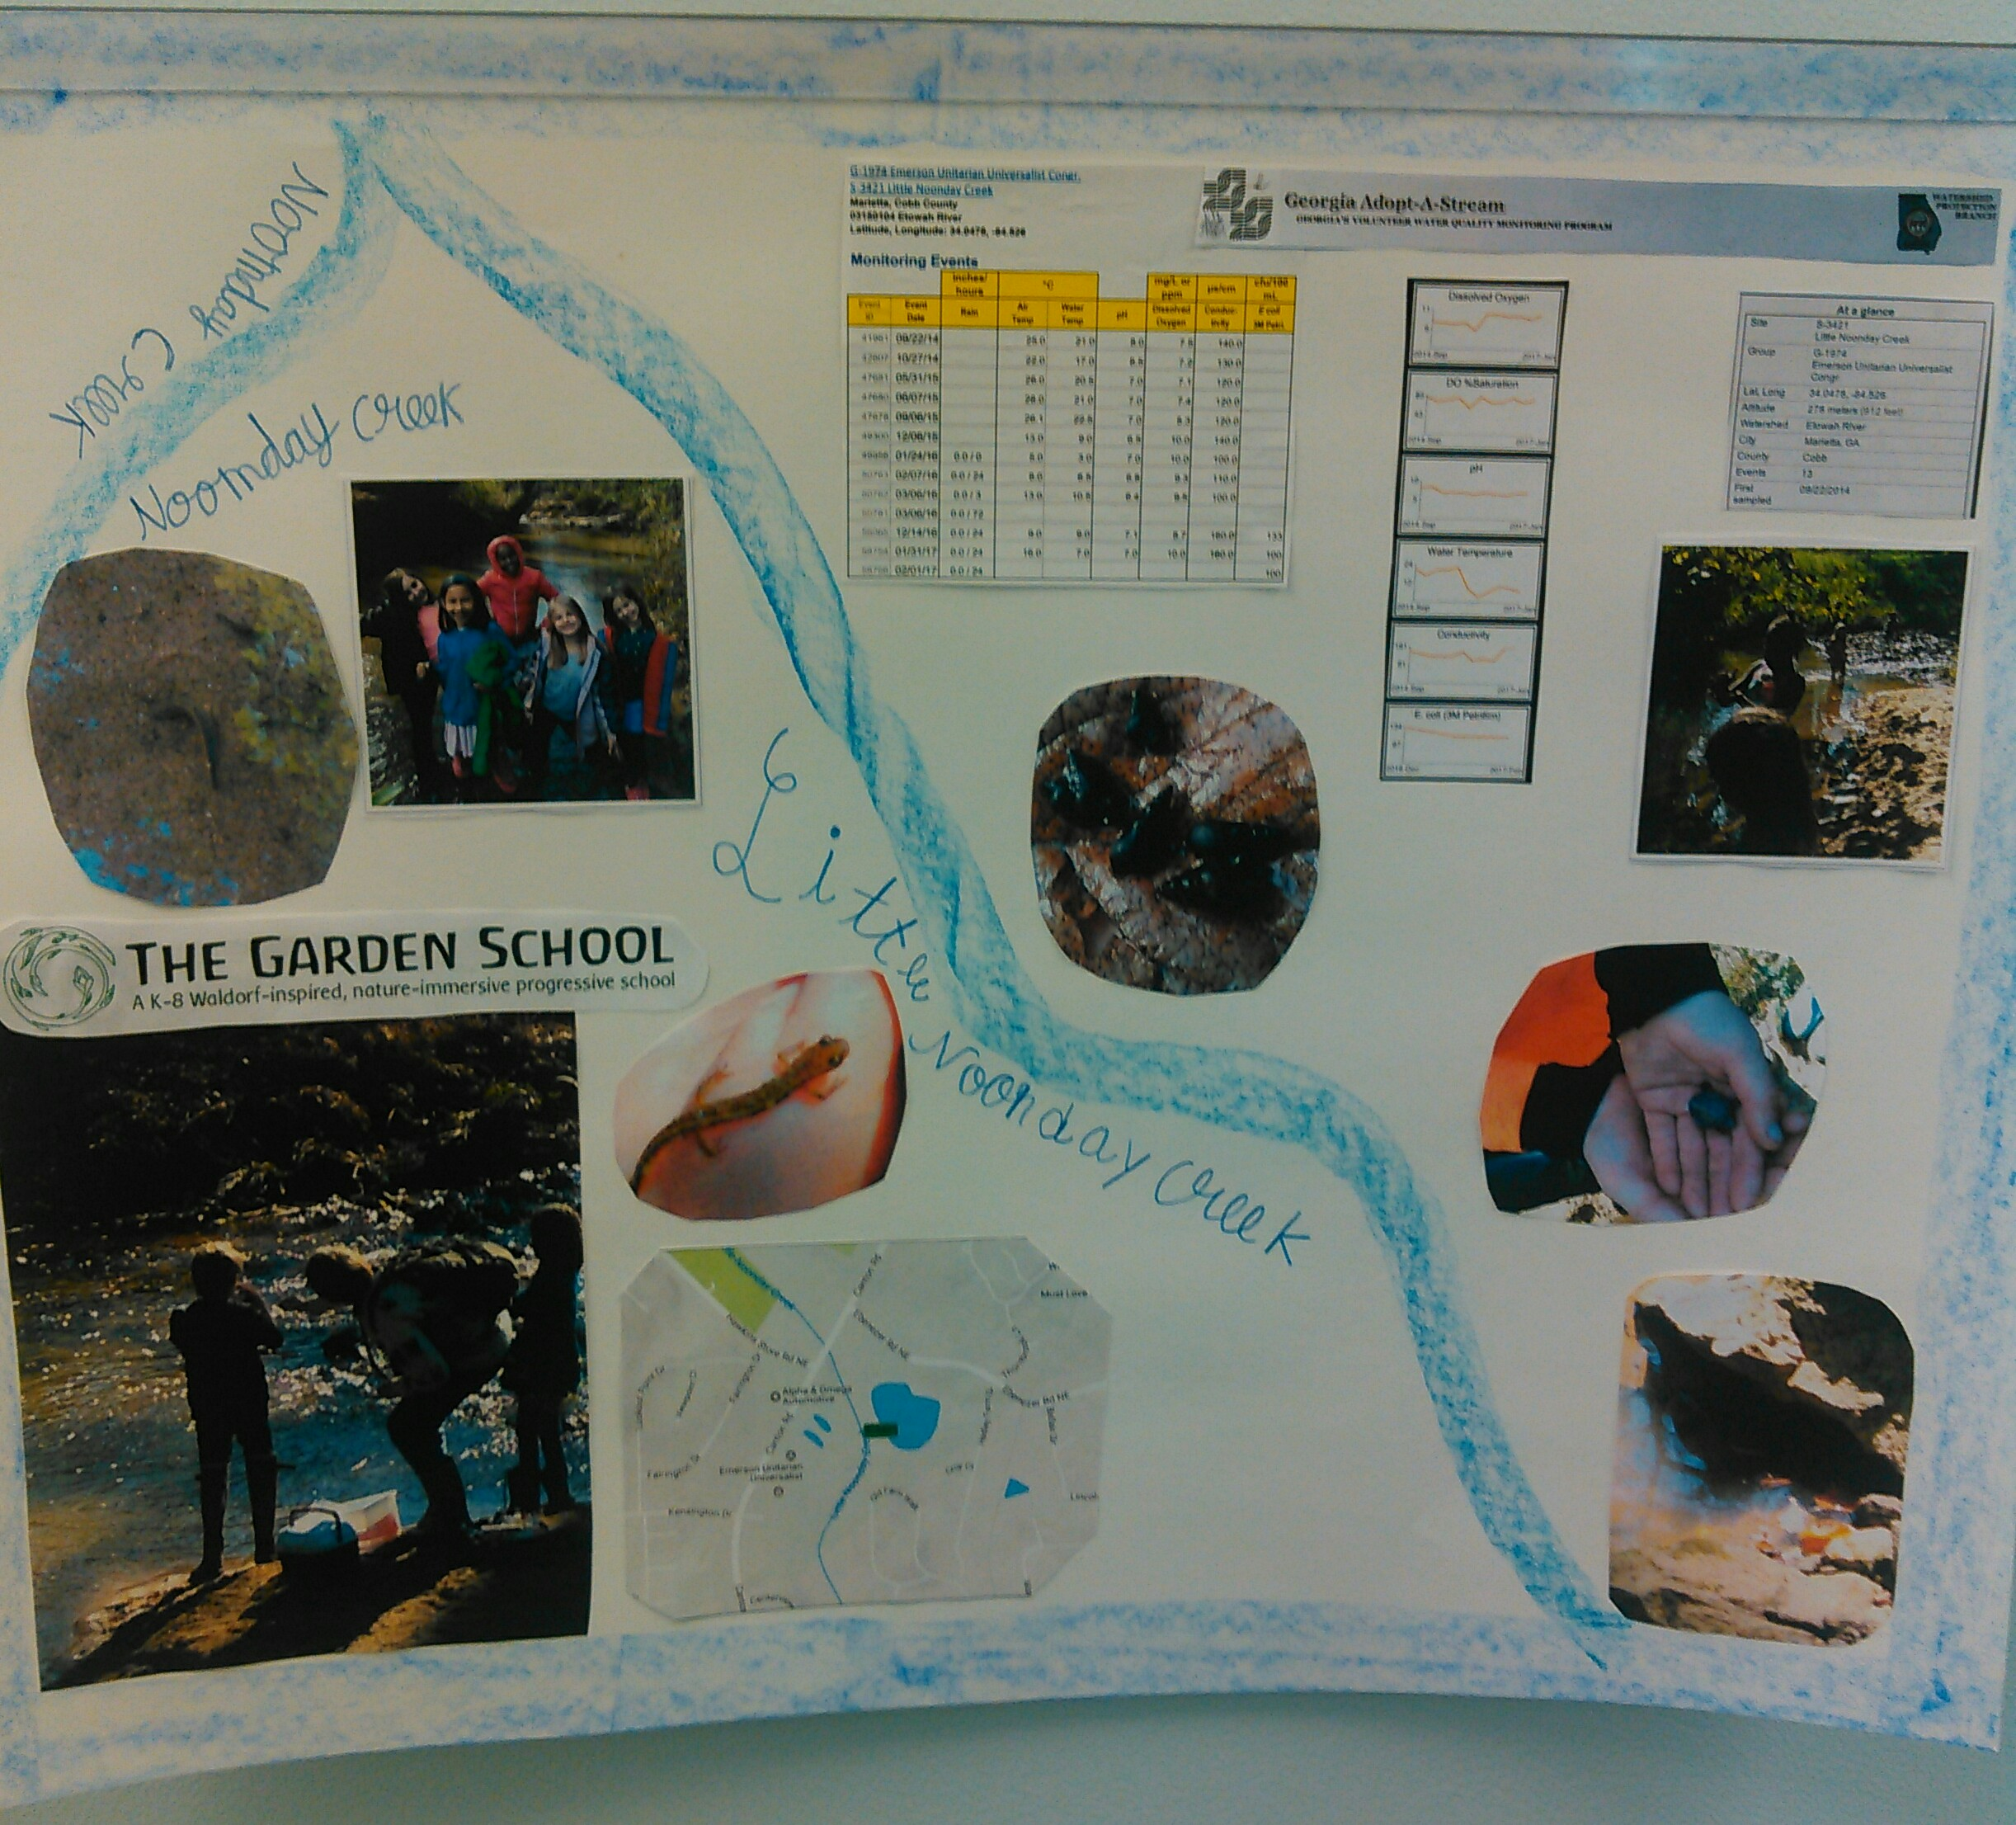 The Garden School Adopt-a-Stream service poster will be displayed at Cobb County Watershed offices.